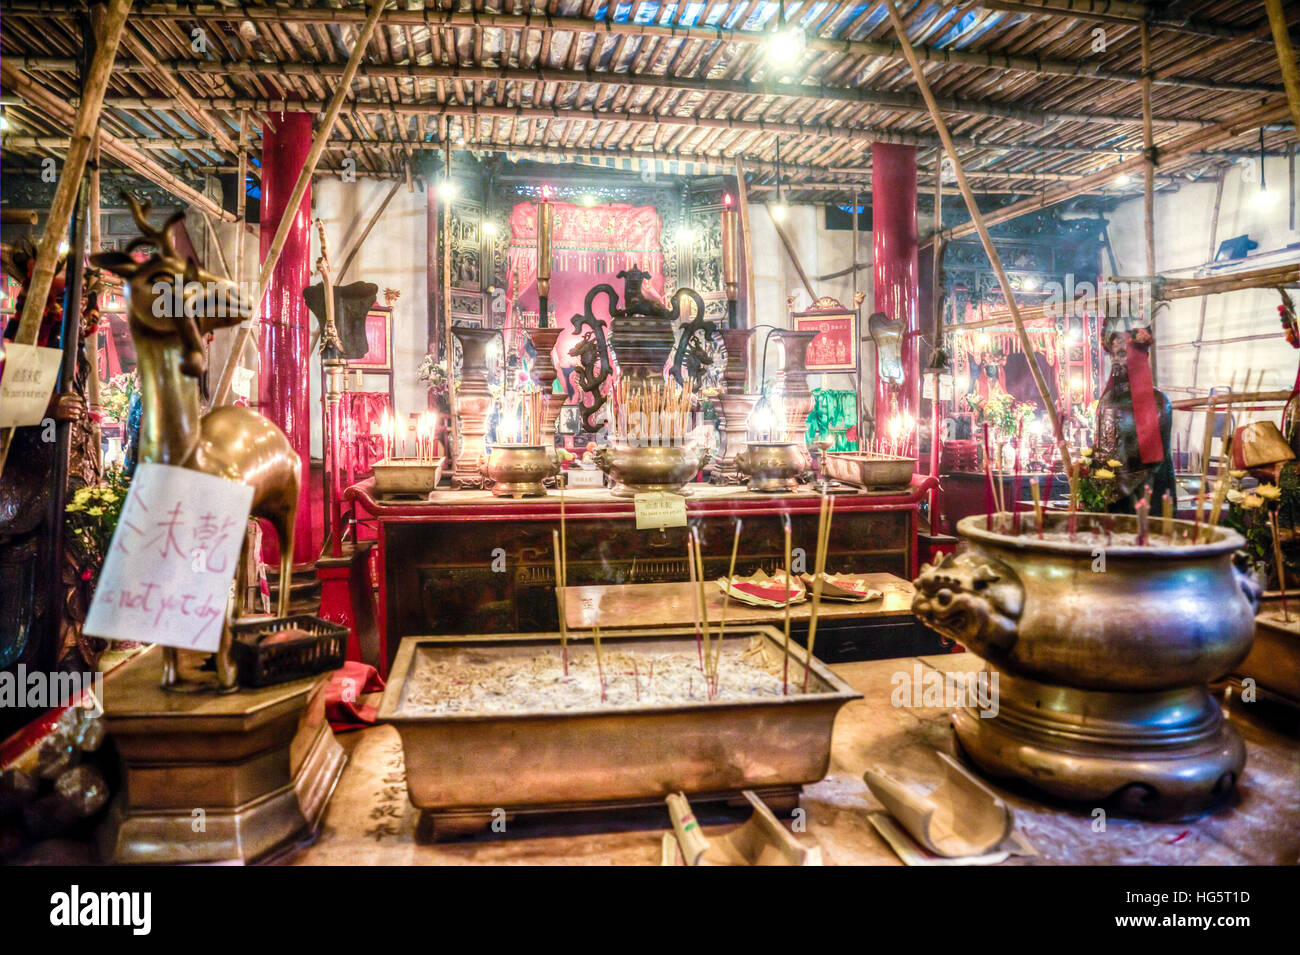 Man Mo Temple on Hong Kong Island iconic incense idols gods prayer altar Hong Kong's only Man Mo Temple, built - Stock Image